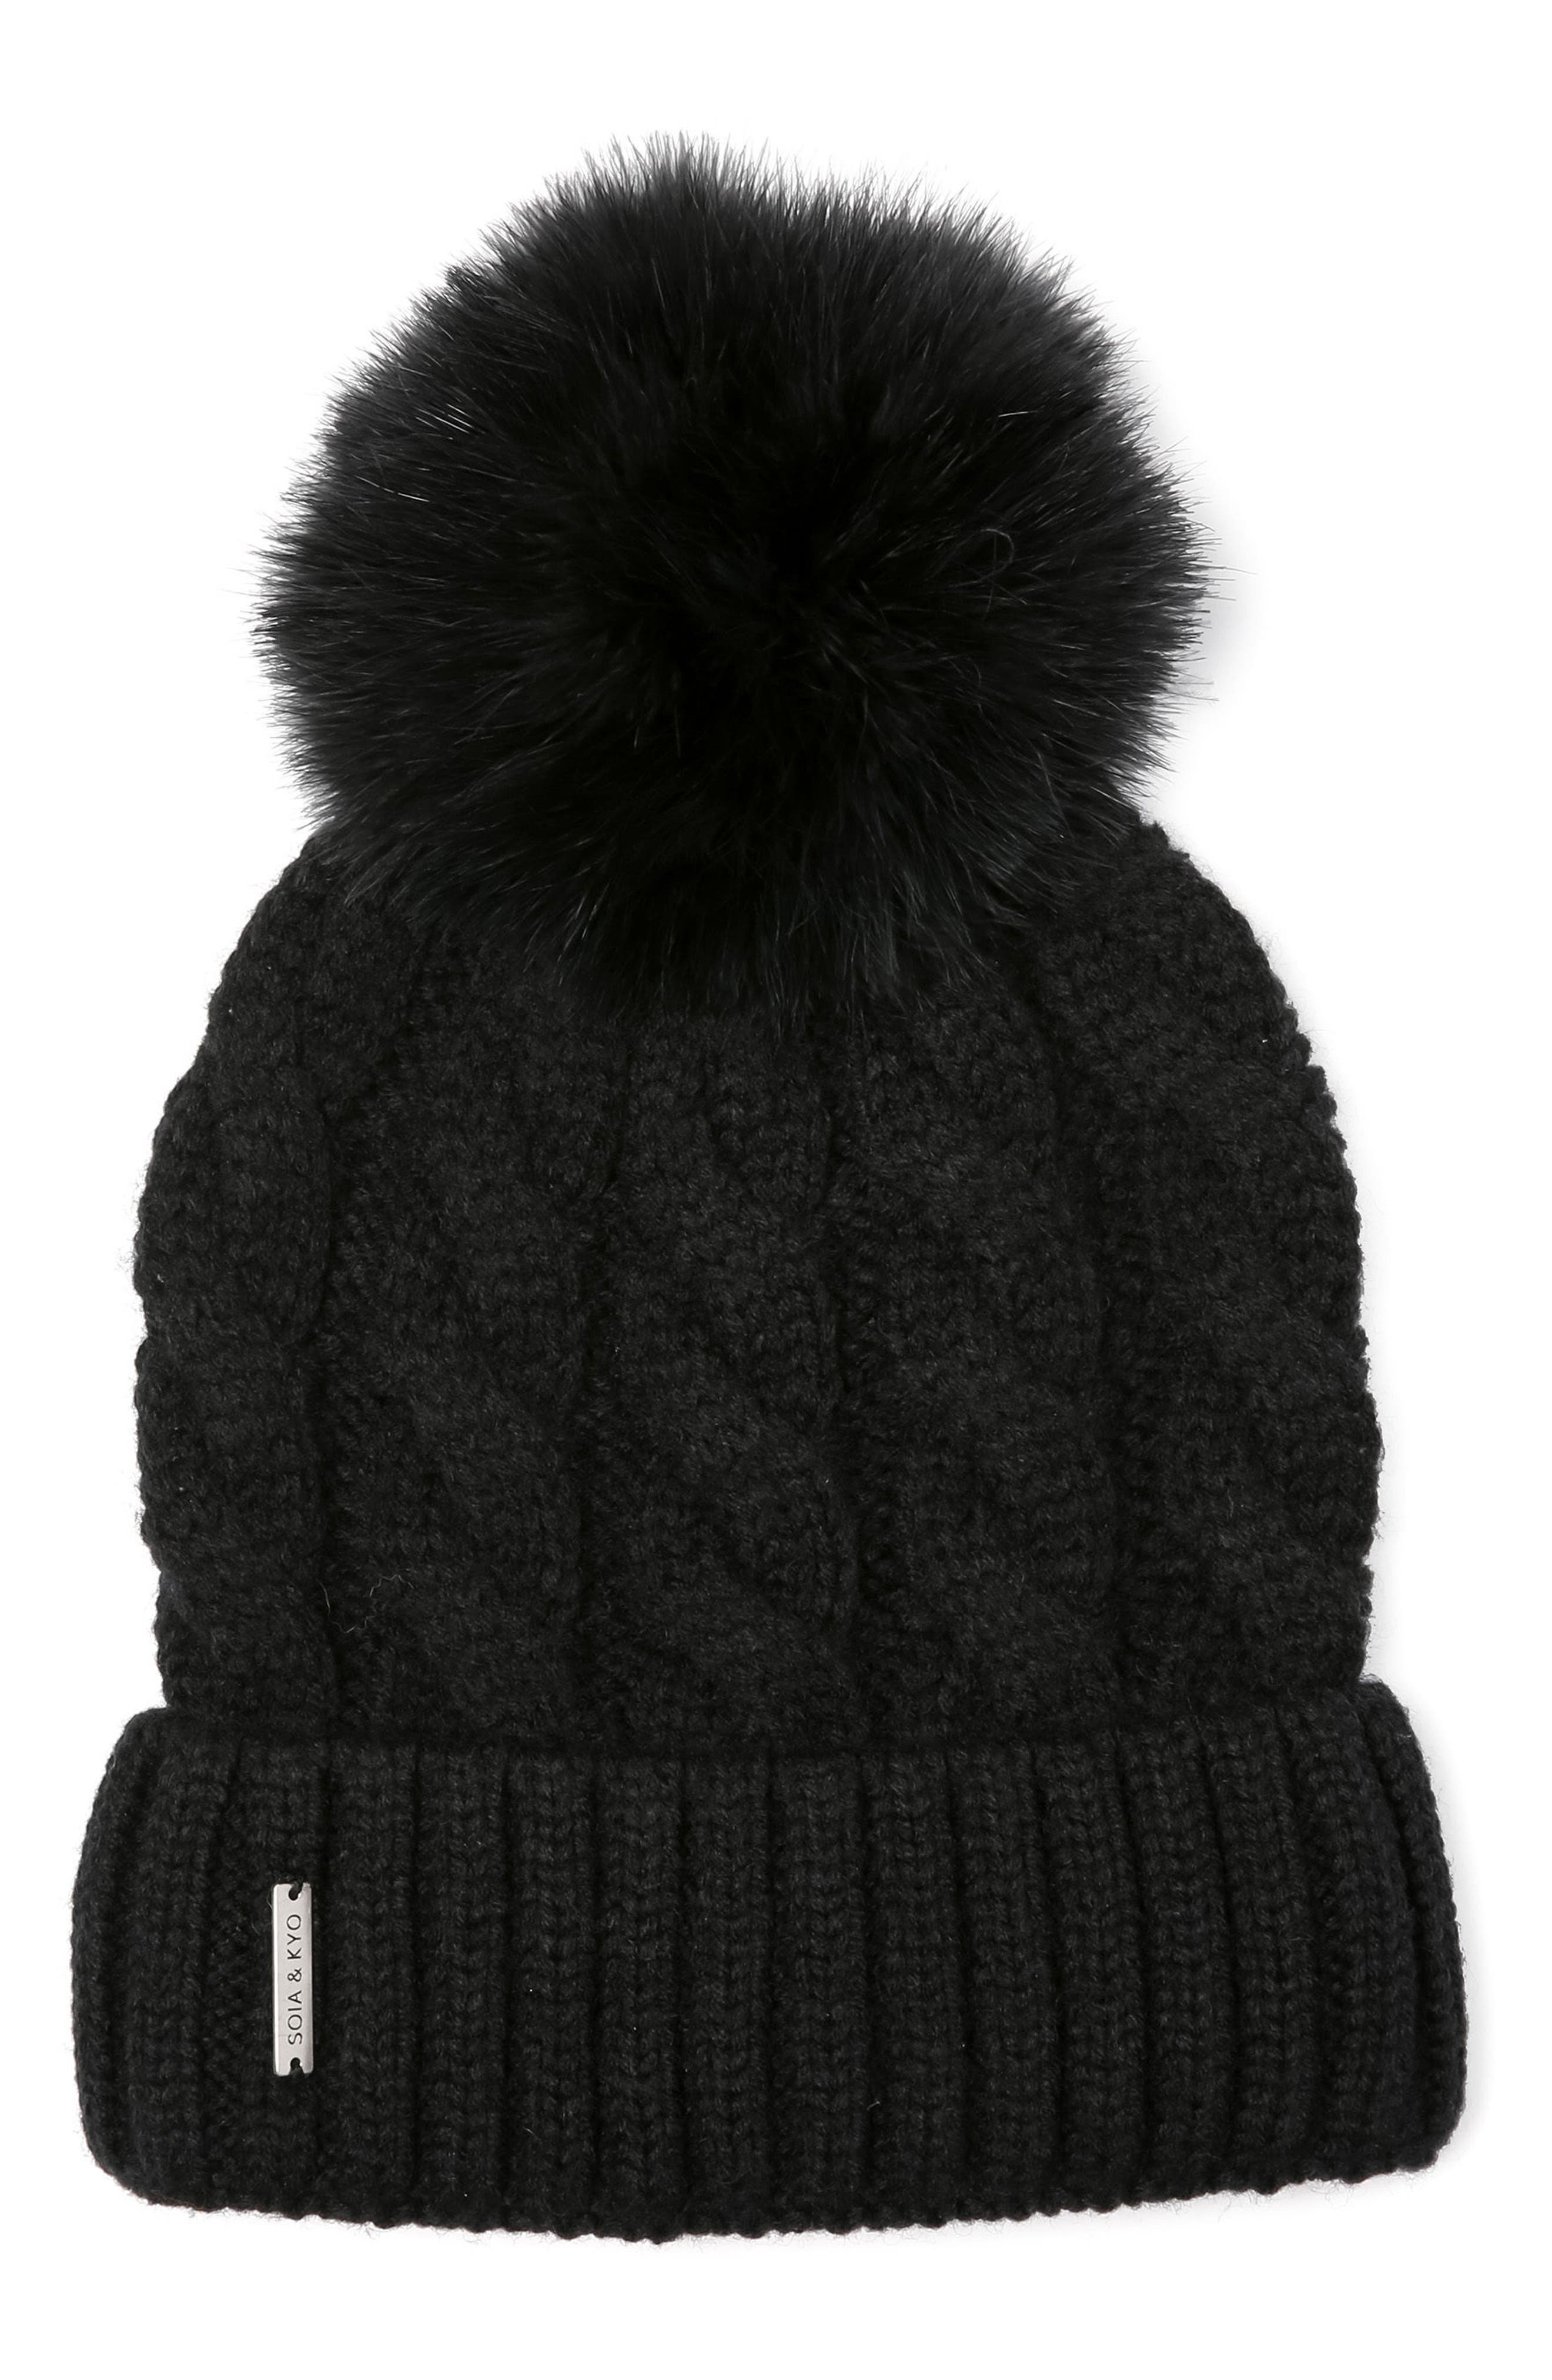 Cable Knit Beanie with Removable Feather Pompom,                             Main thumbnail 1, color,                             Black